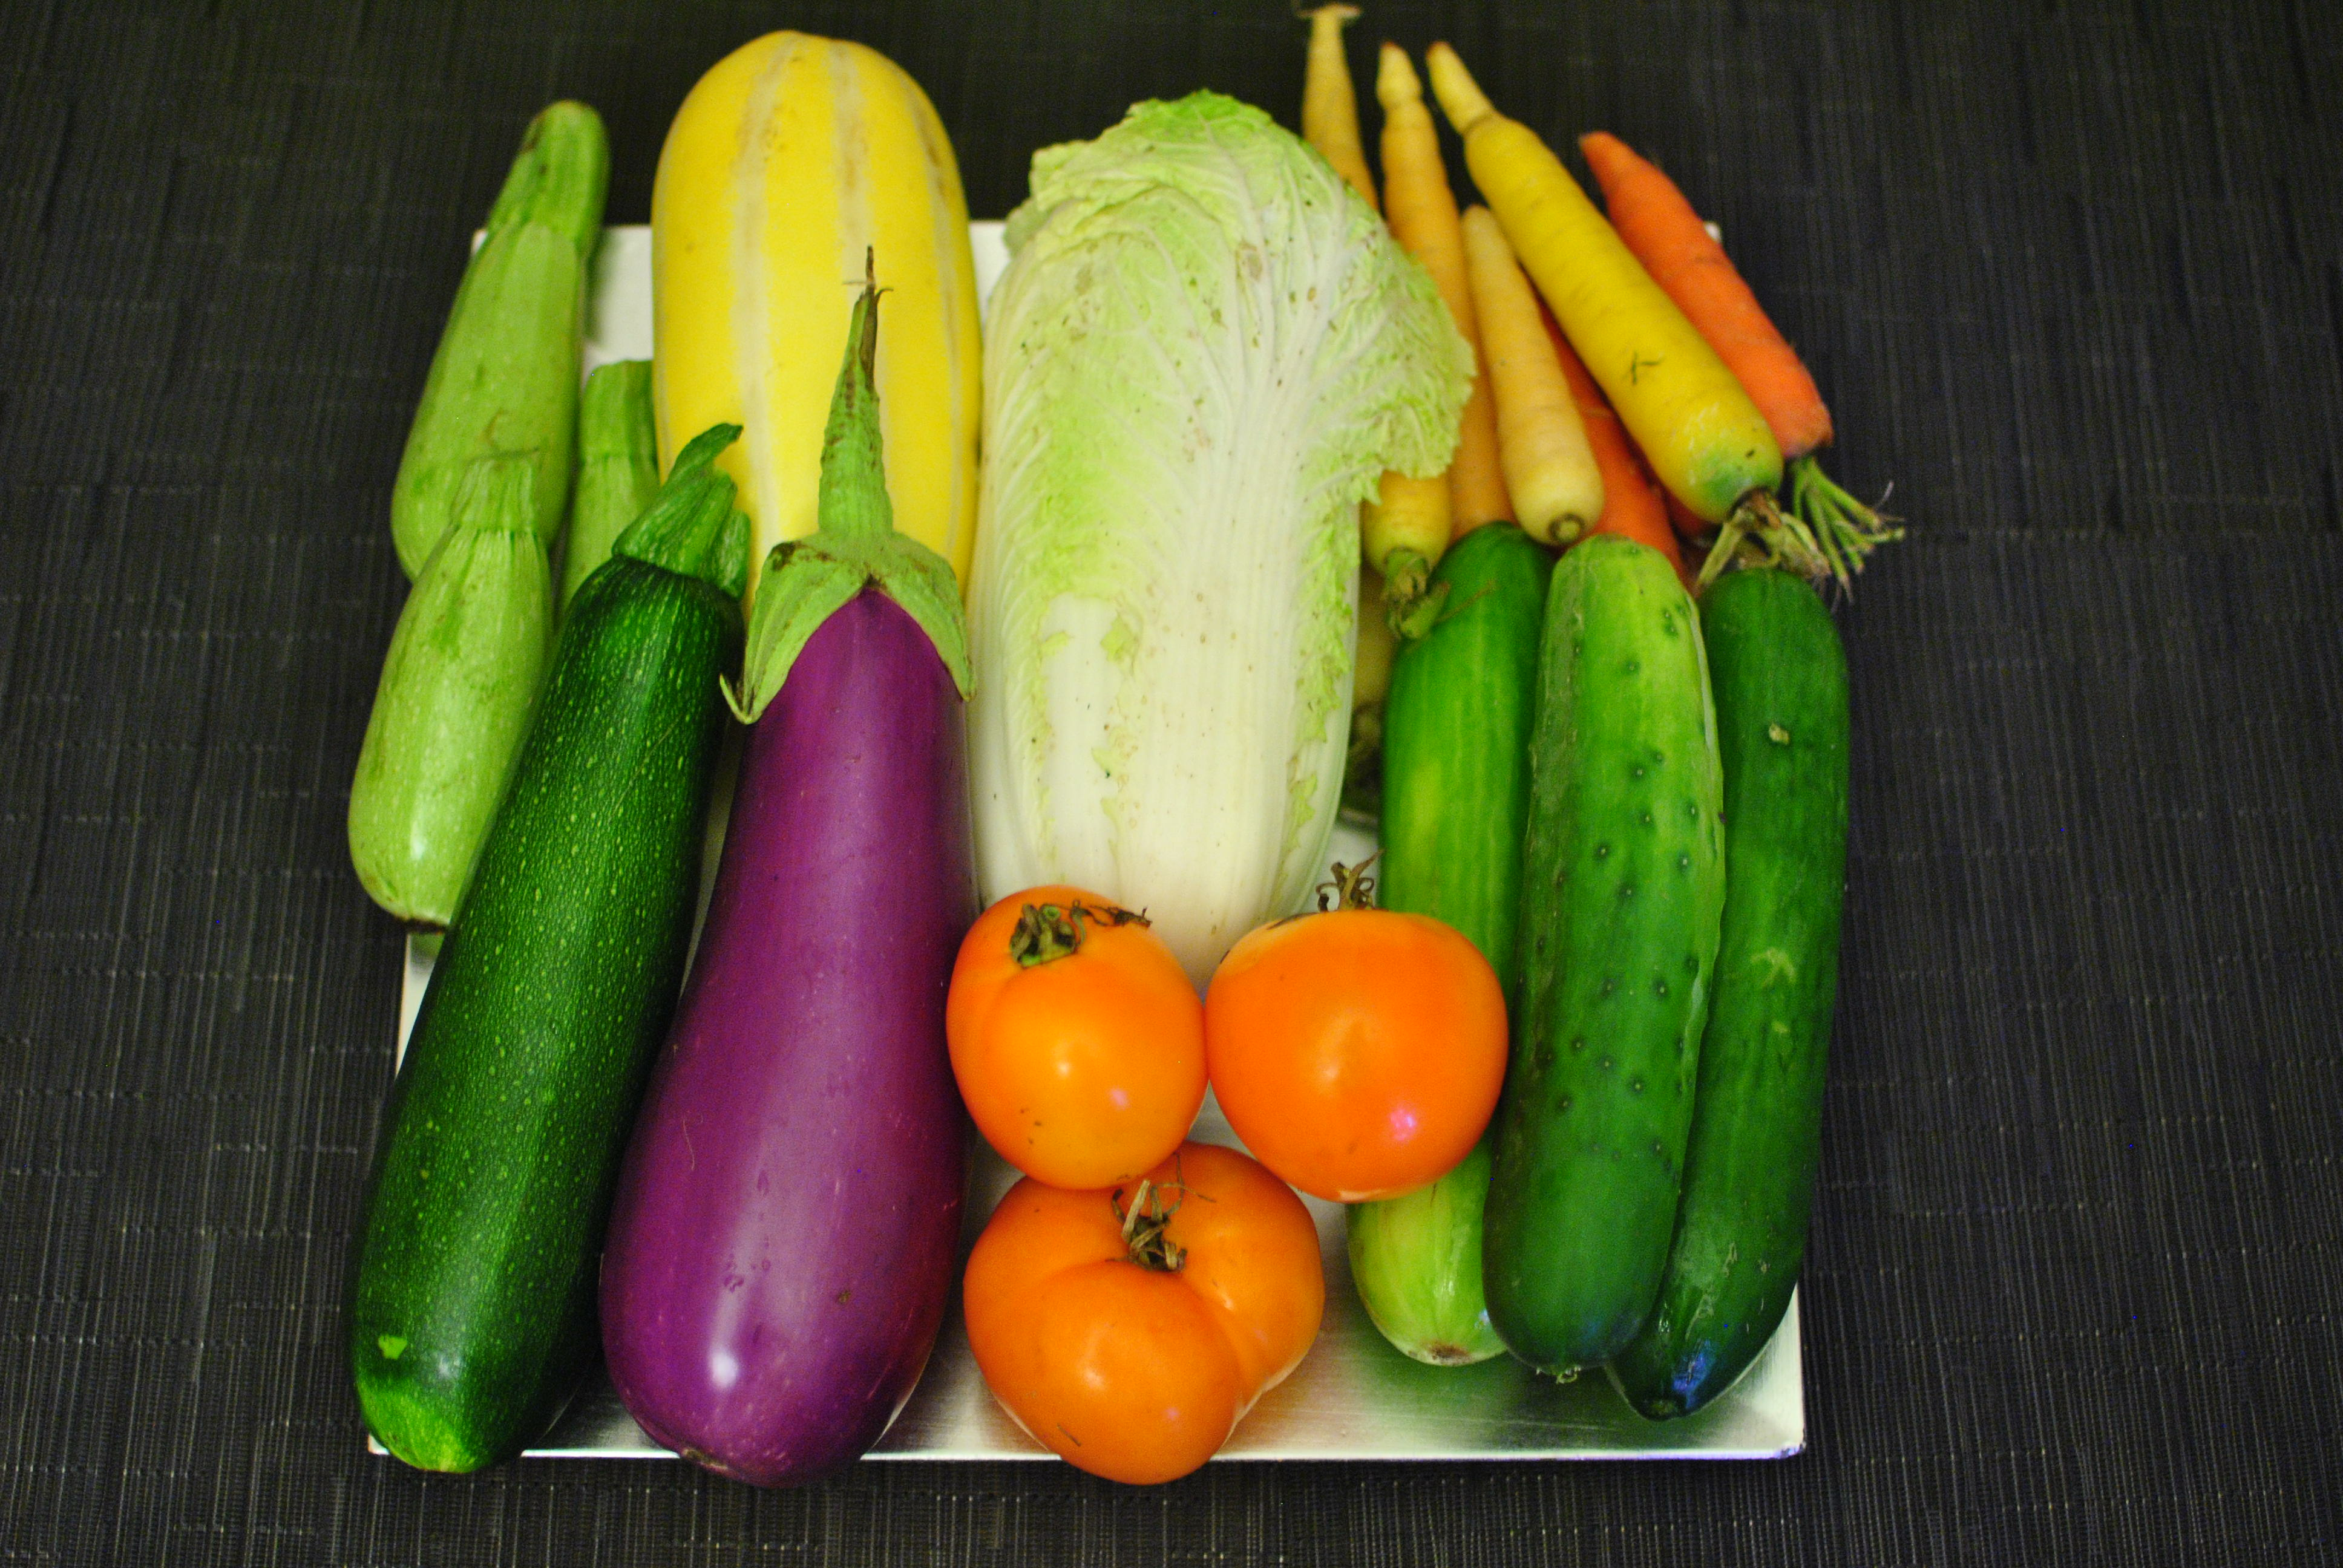 Image result for pictures of cucumber, cabbage, egg plant together